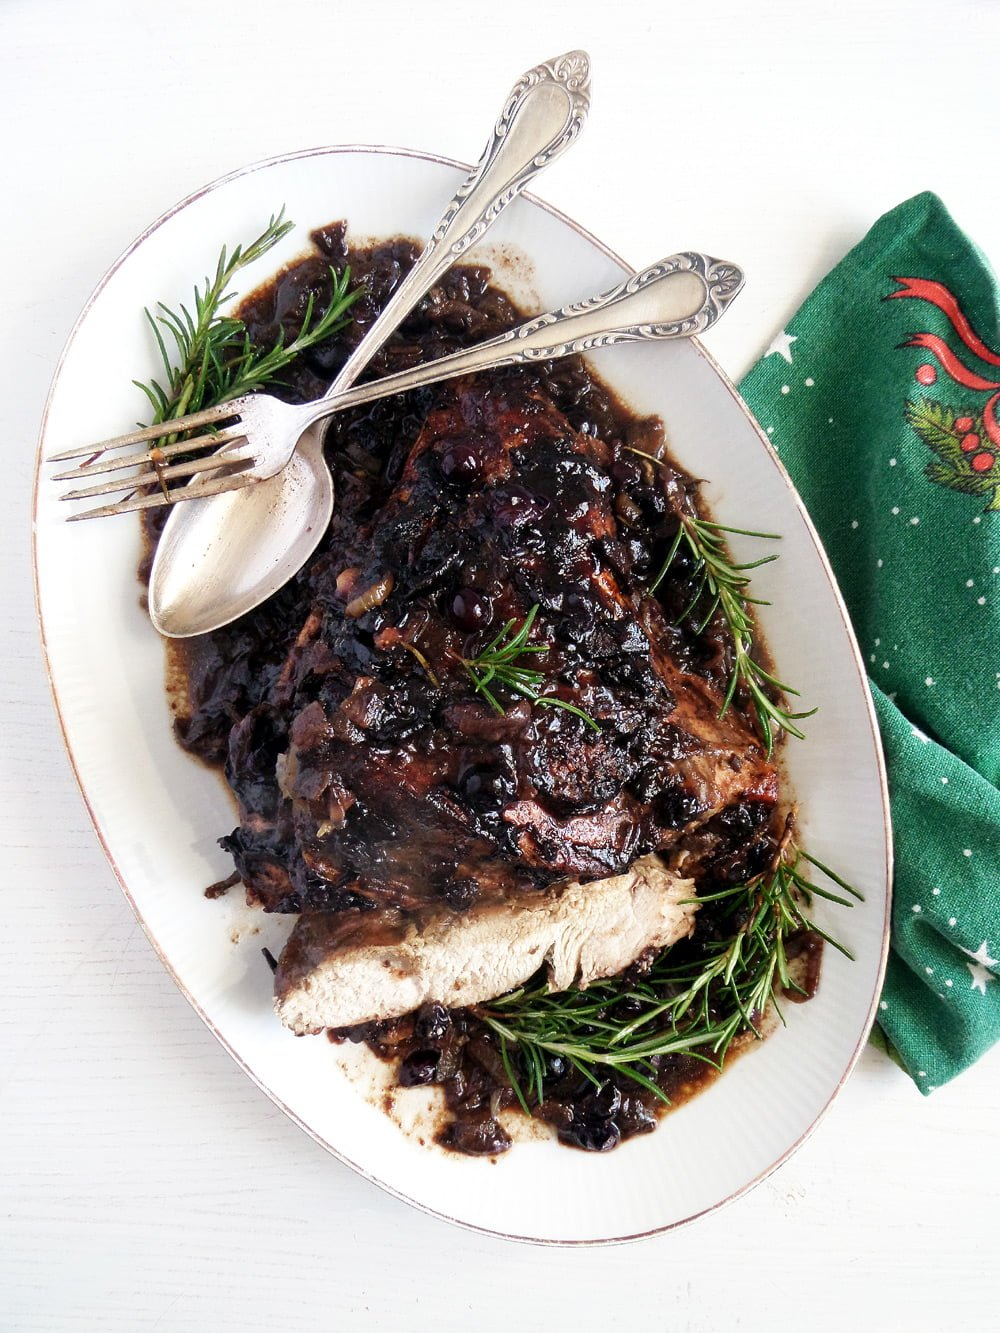 turkey blueberries sauce Tender Pork Tenderloin with a Herb Breadcrumb Crust